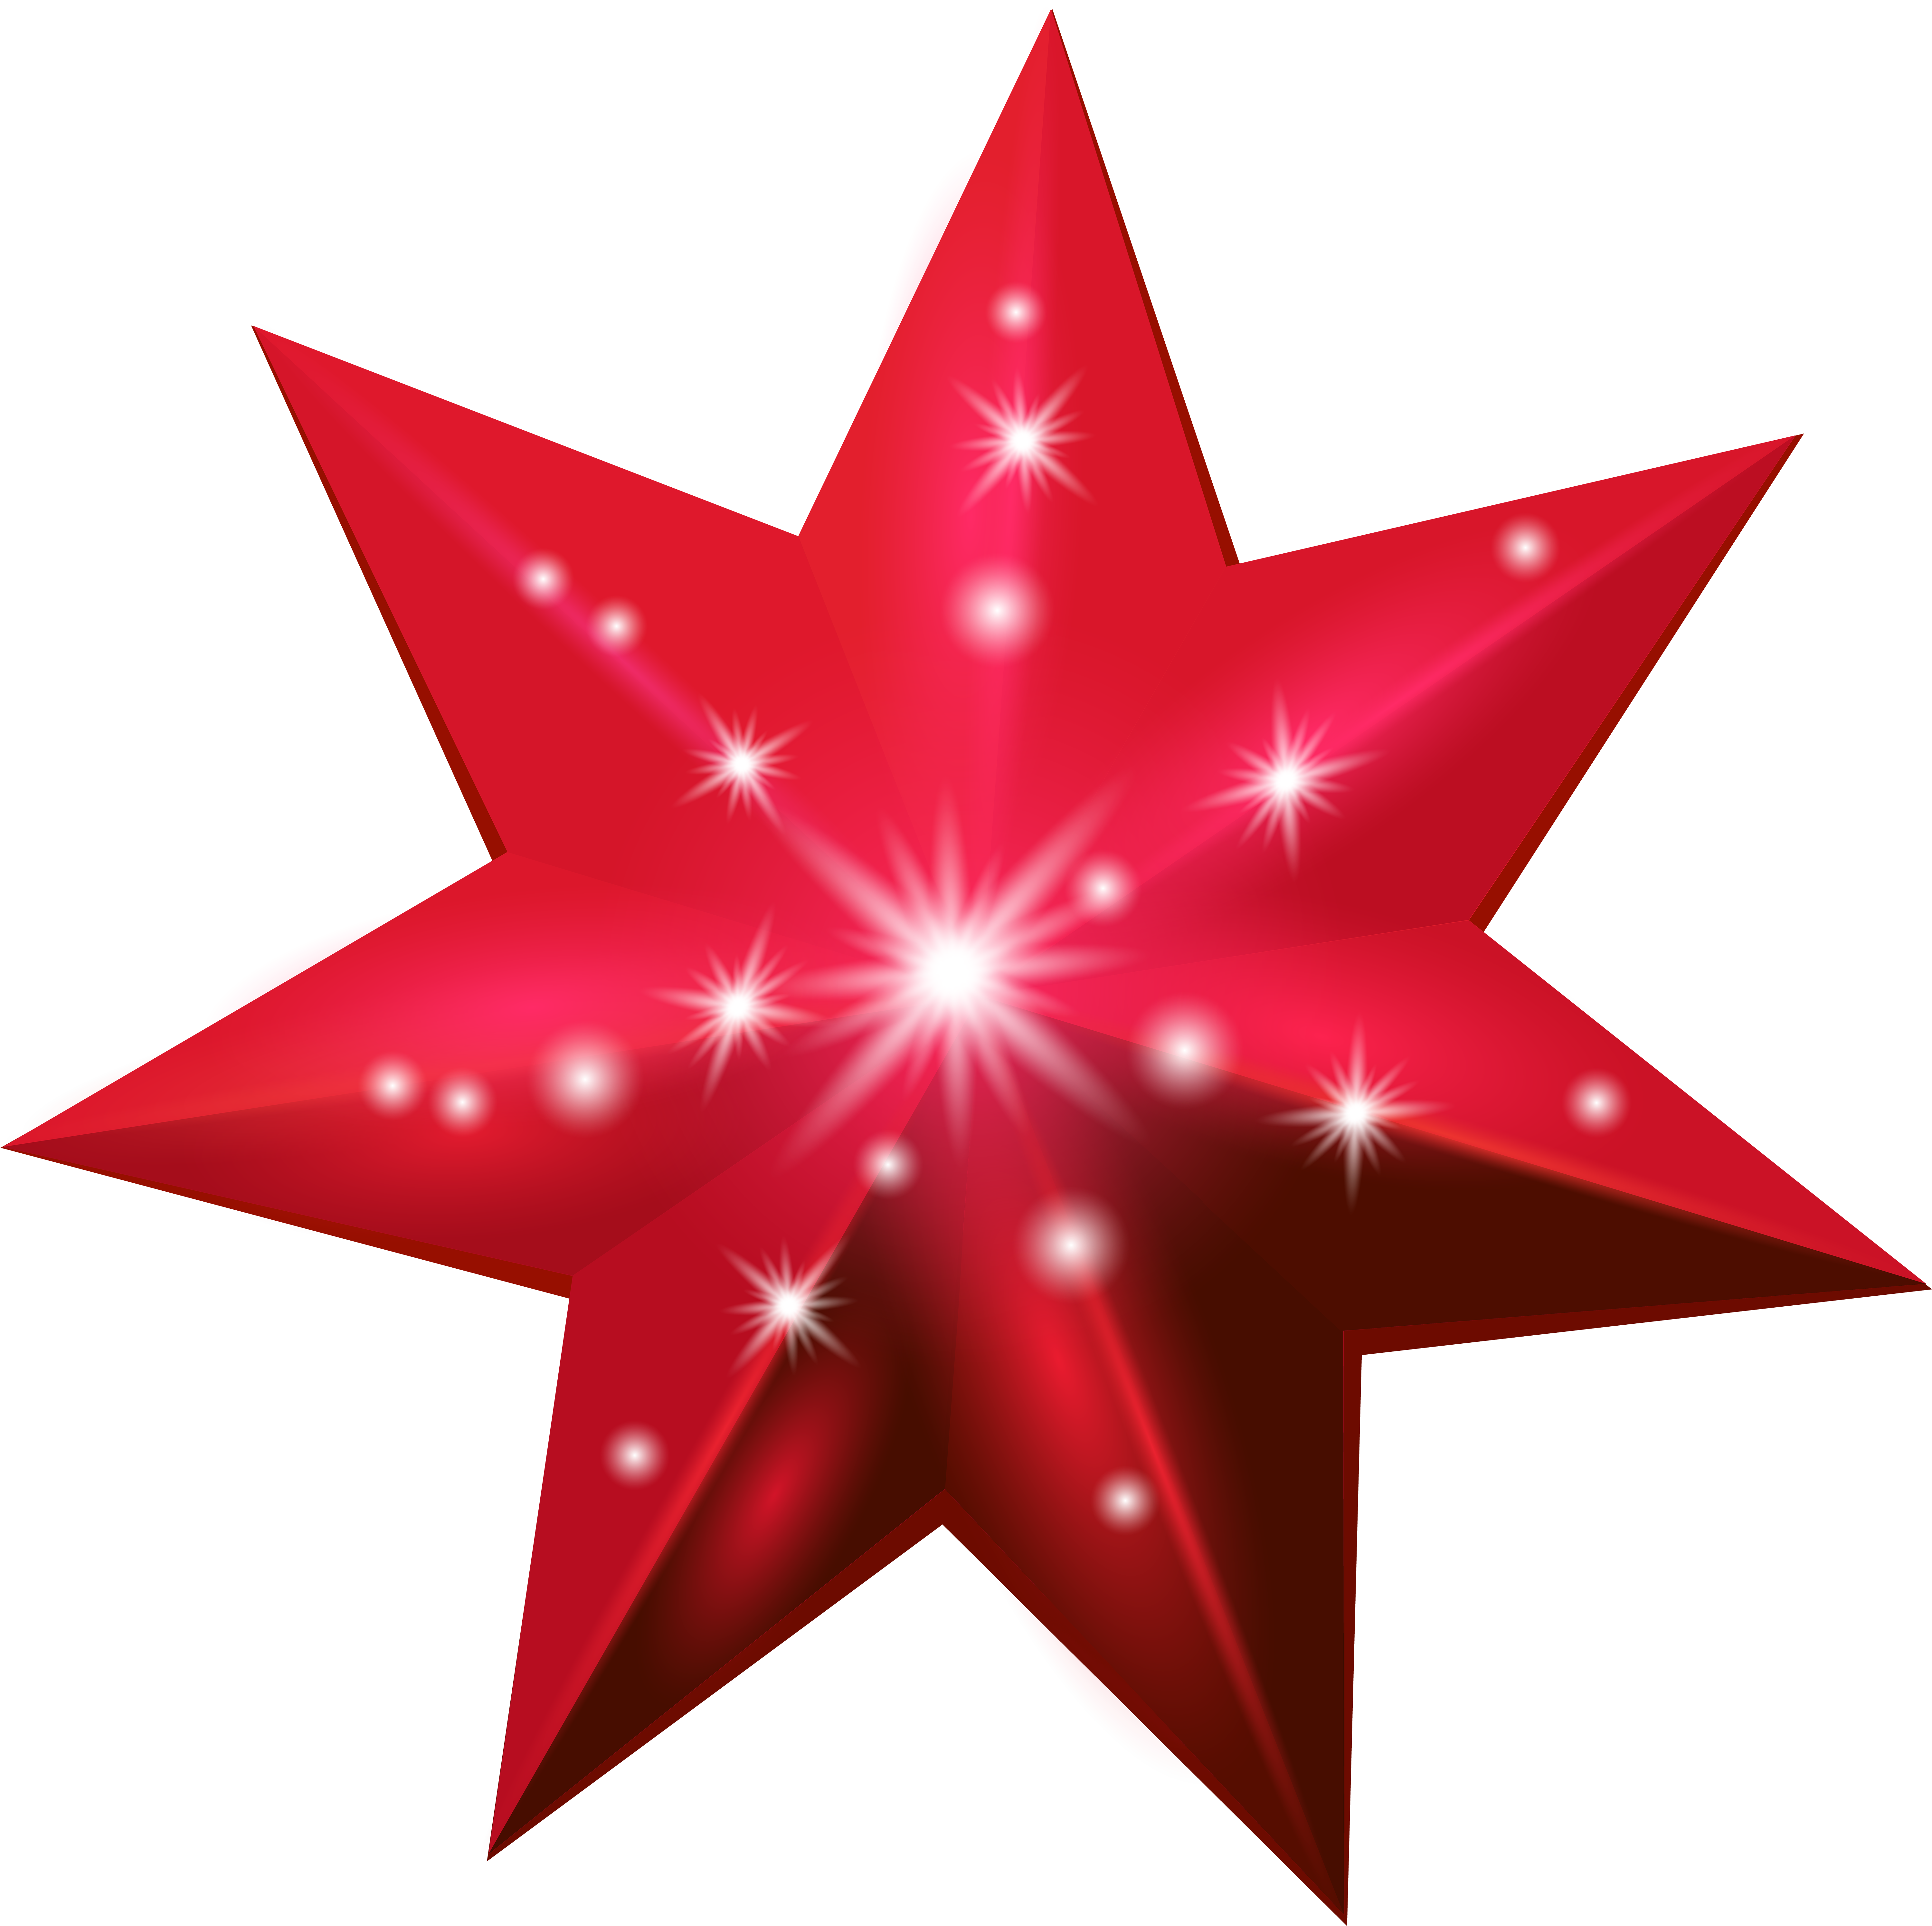 Red star png. Deco transparent clip art